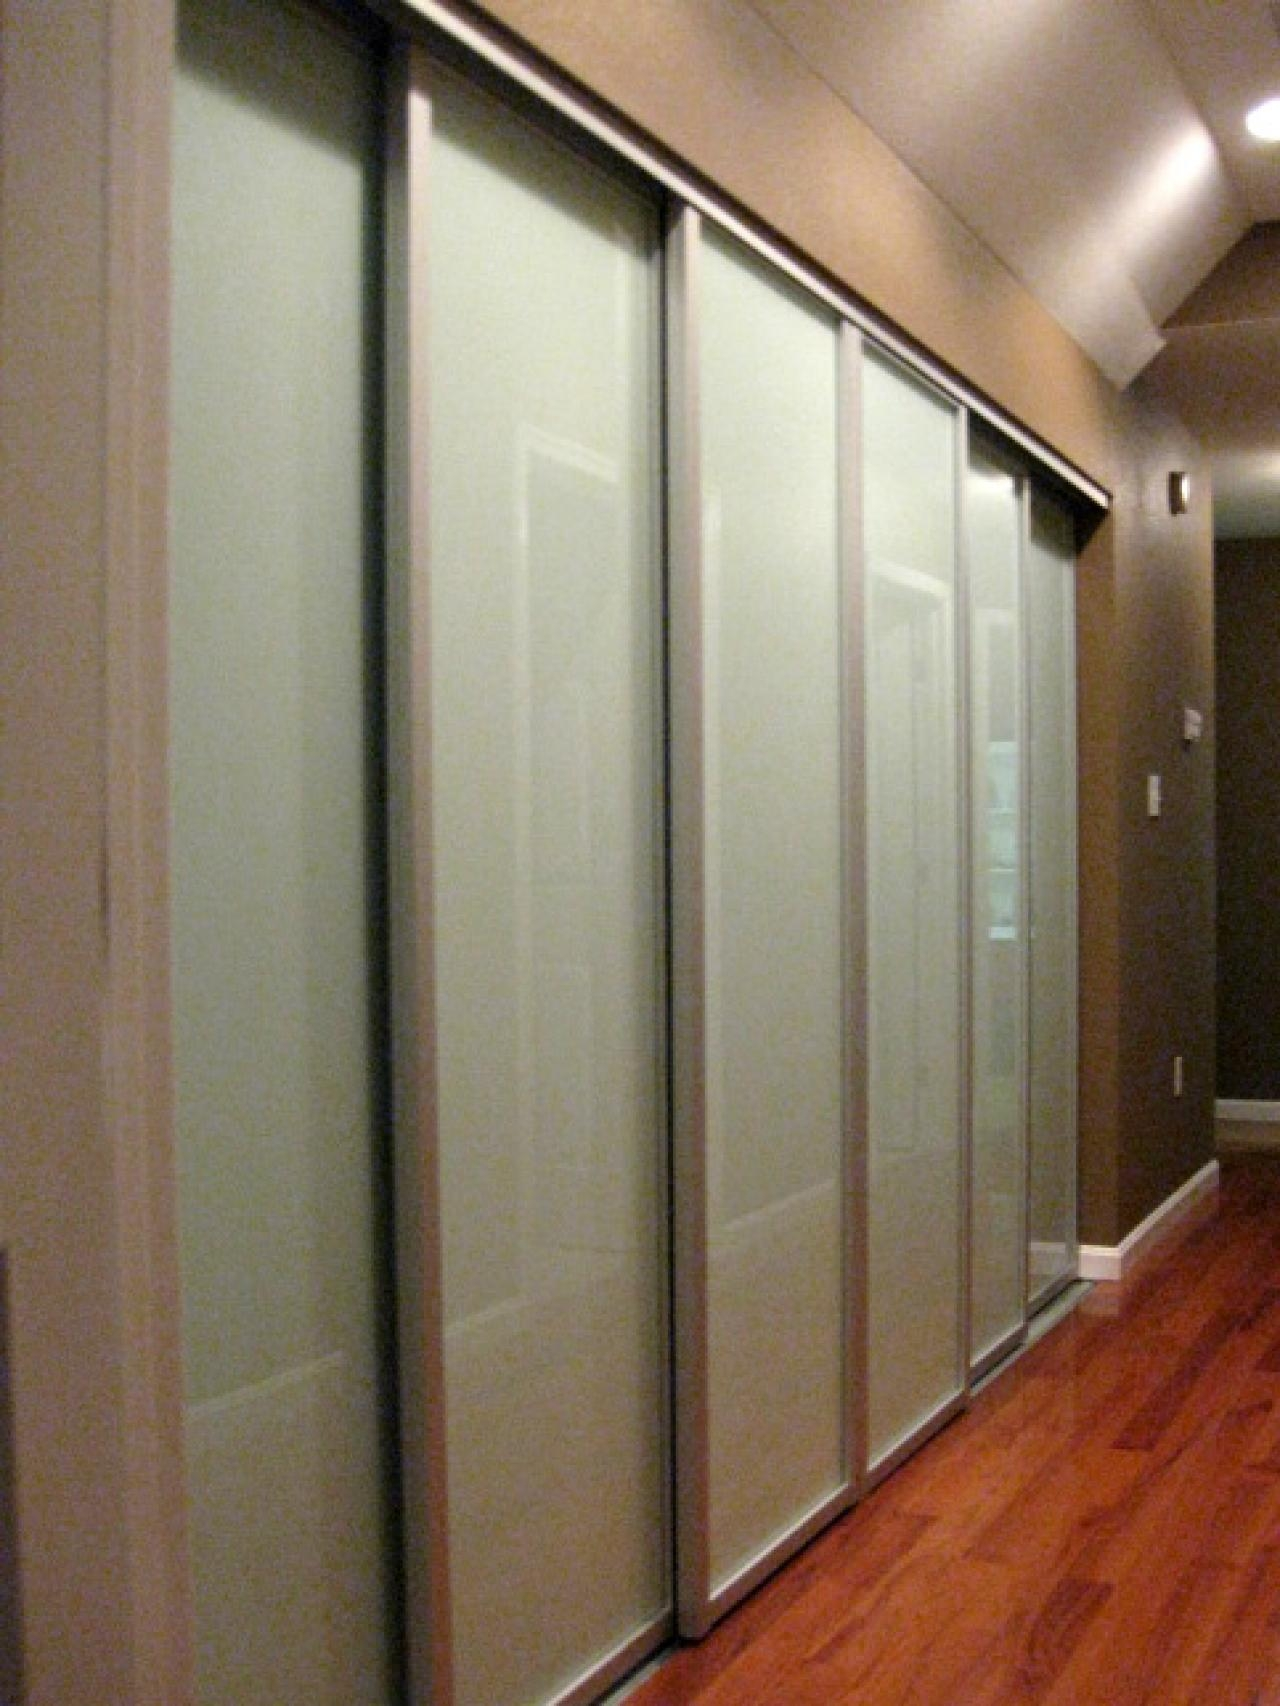 Sliding Closet Doors Design Ideas And Options Hgtv With Hallway Cupboard Doors (Image 20 of 25)